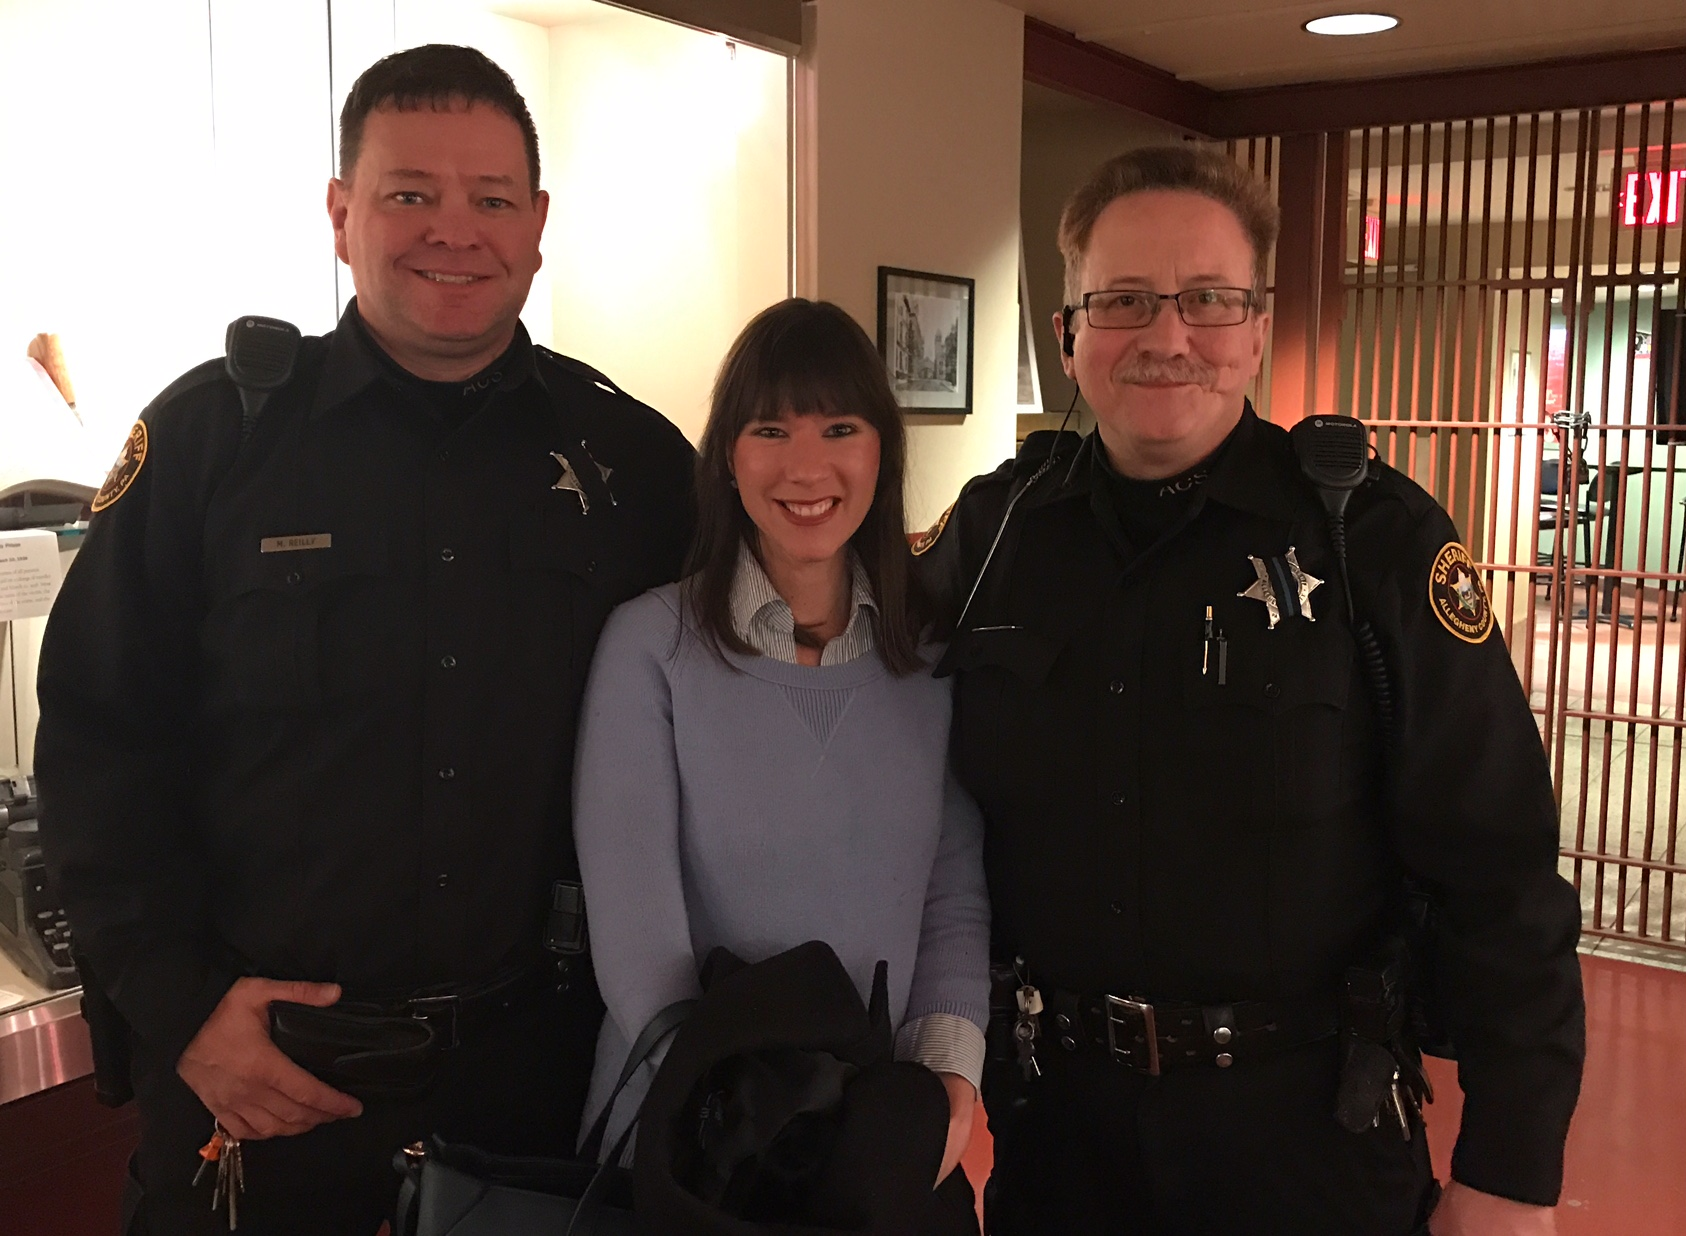 Jo Ana Vaz, Founder PIT Shop, with officers from the Allegheny County Sheriff's Office.